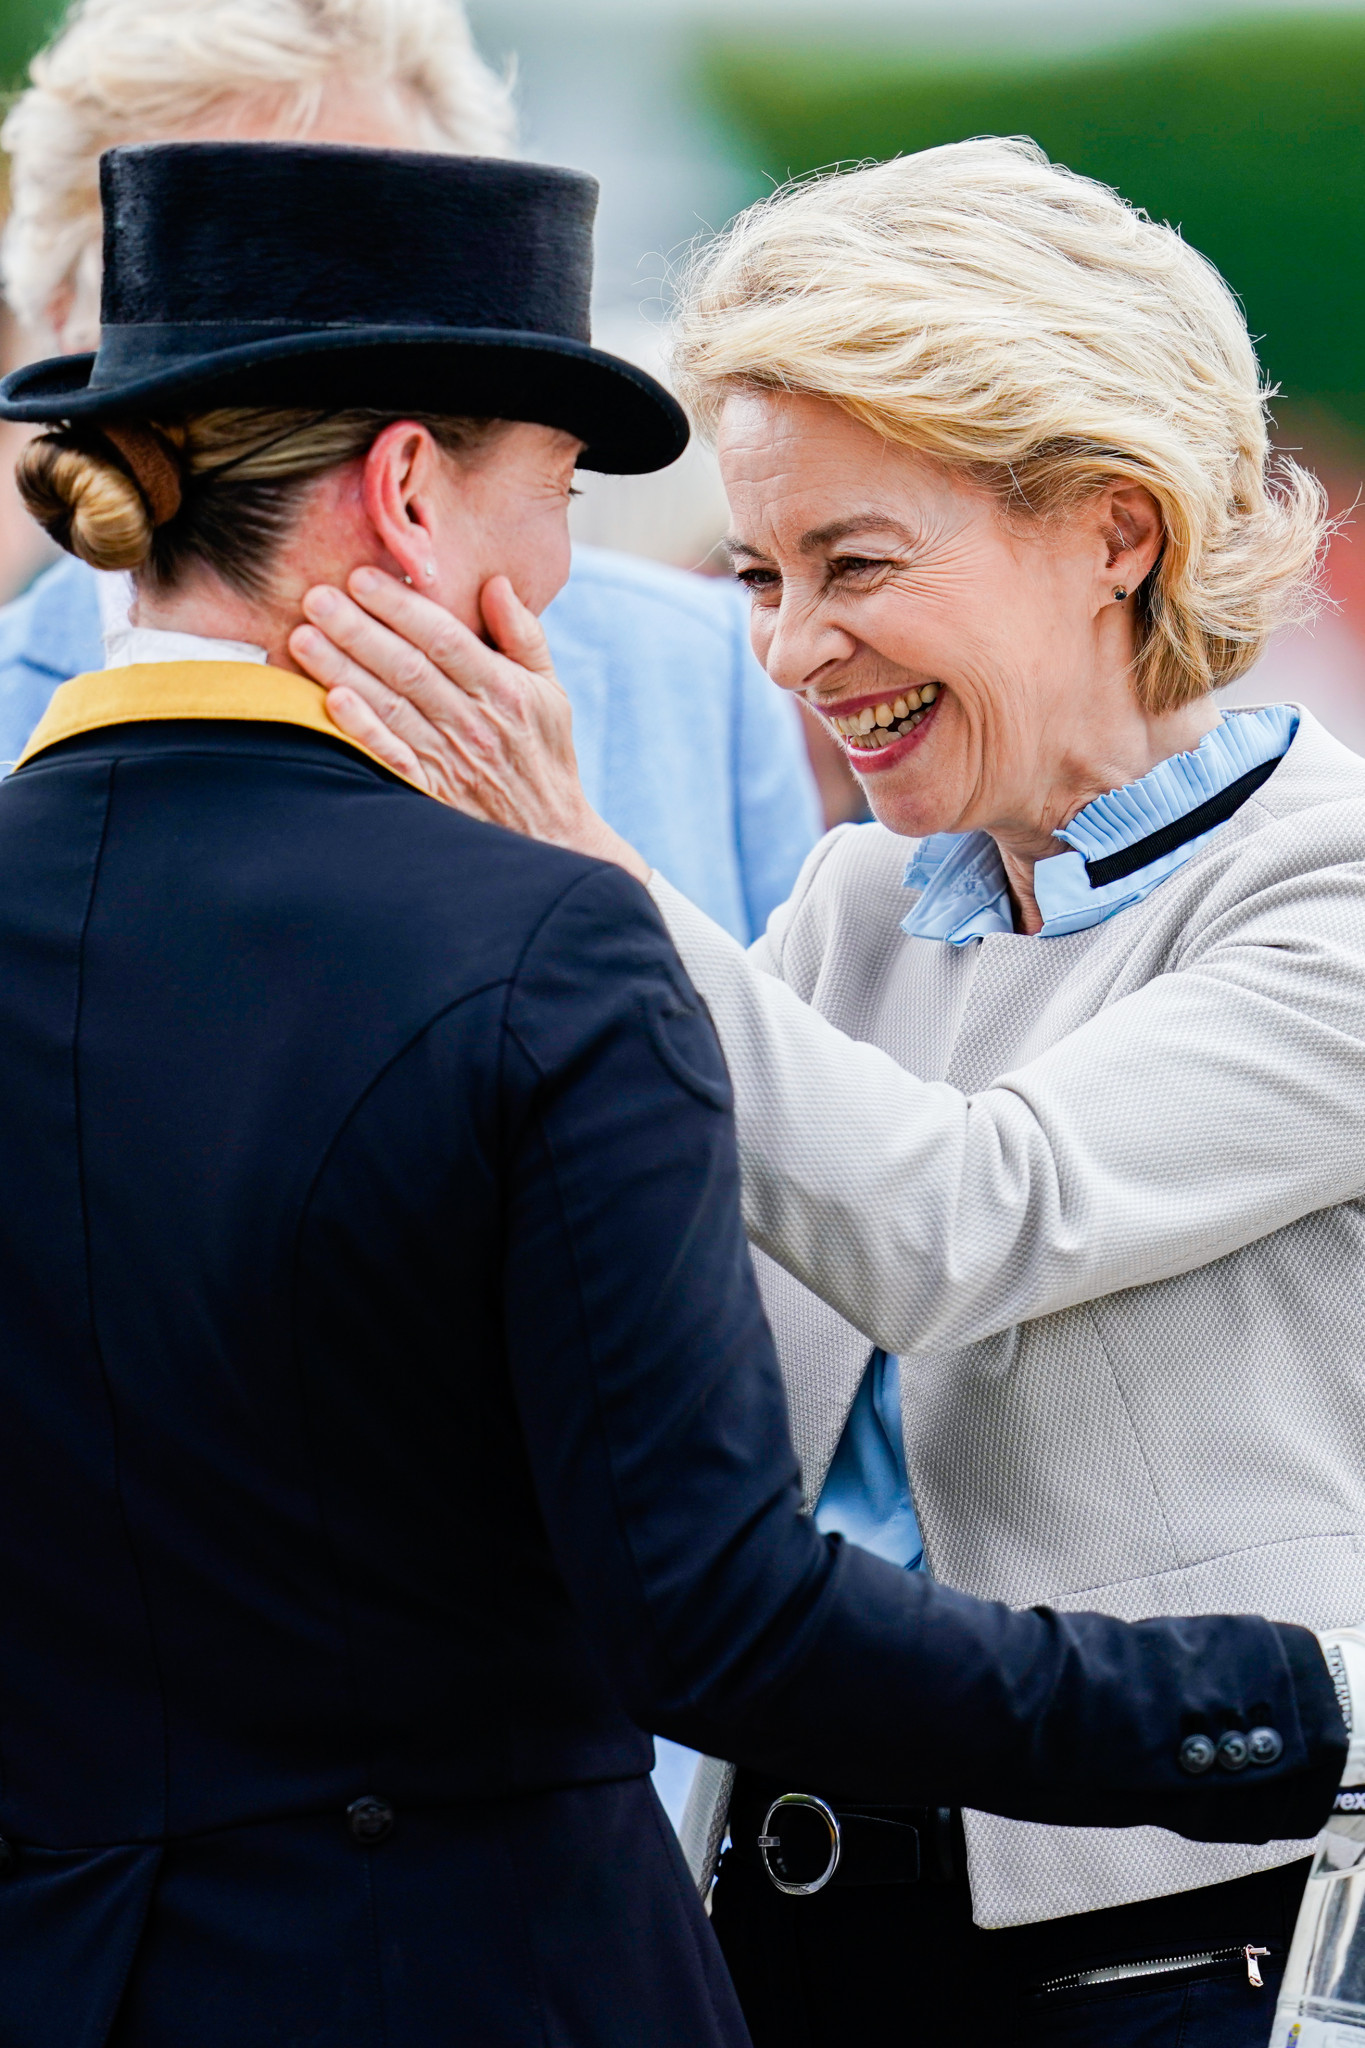 Newly-elected EU President watches Werth celebrate 50th birthday with Grand Prix win at Aachen